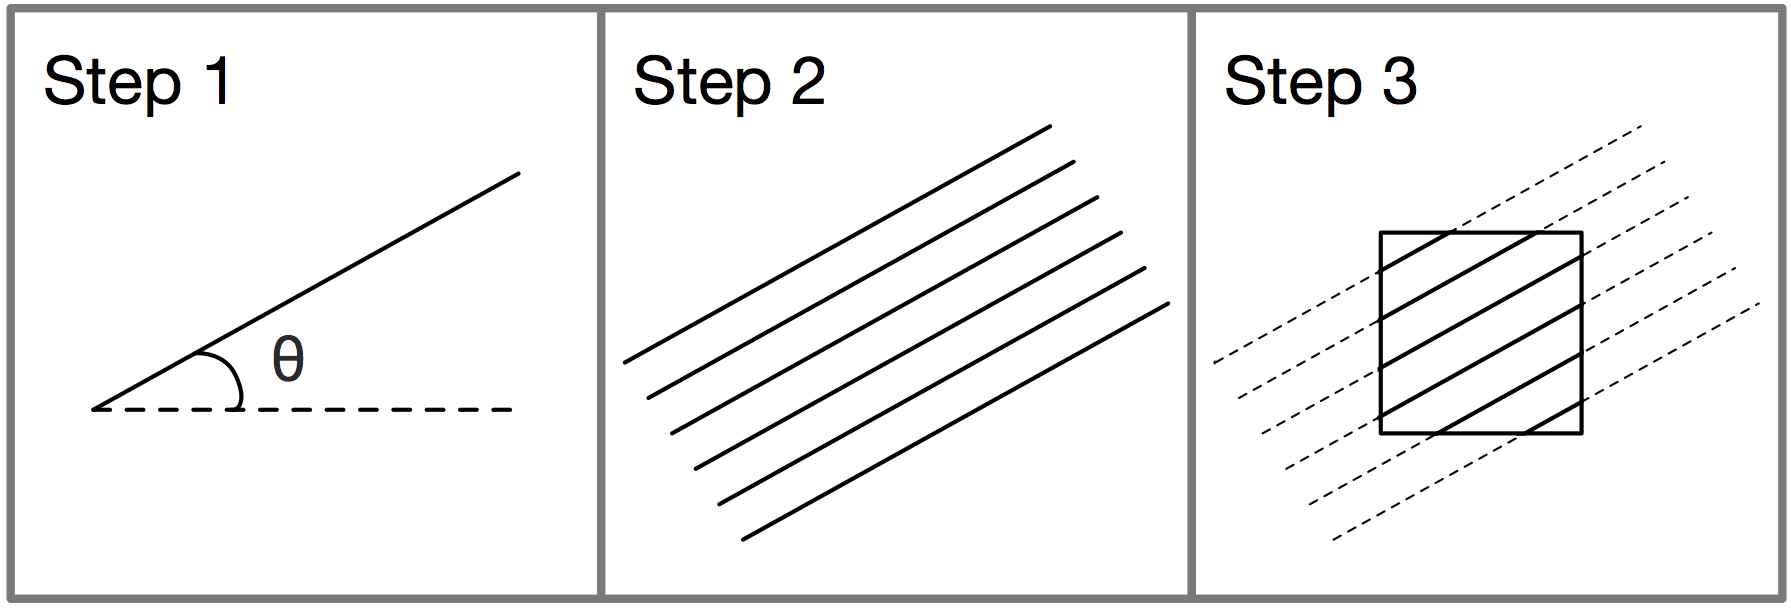 Three step technique describing generation of a single tile shown in the prior examples